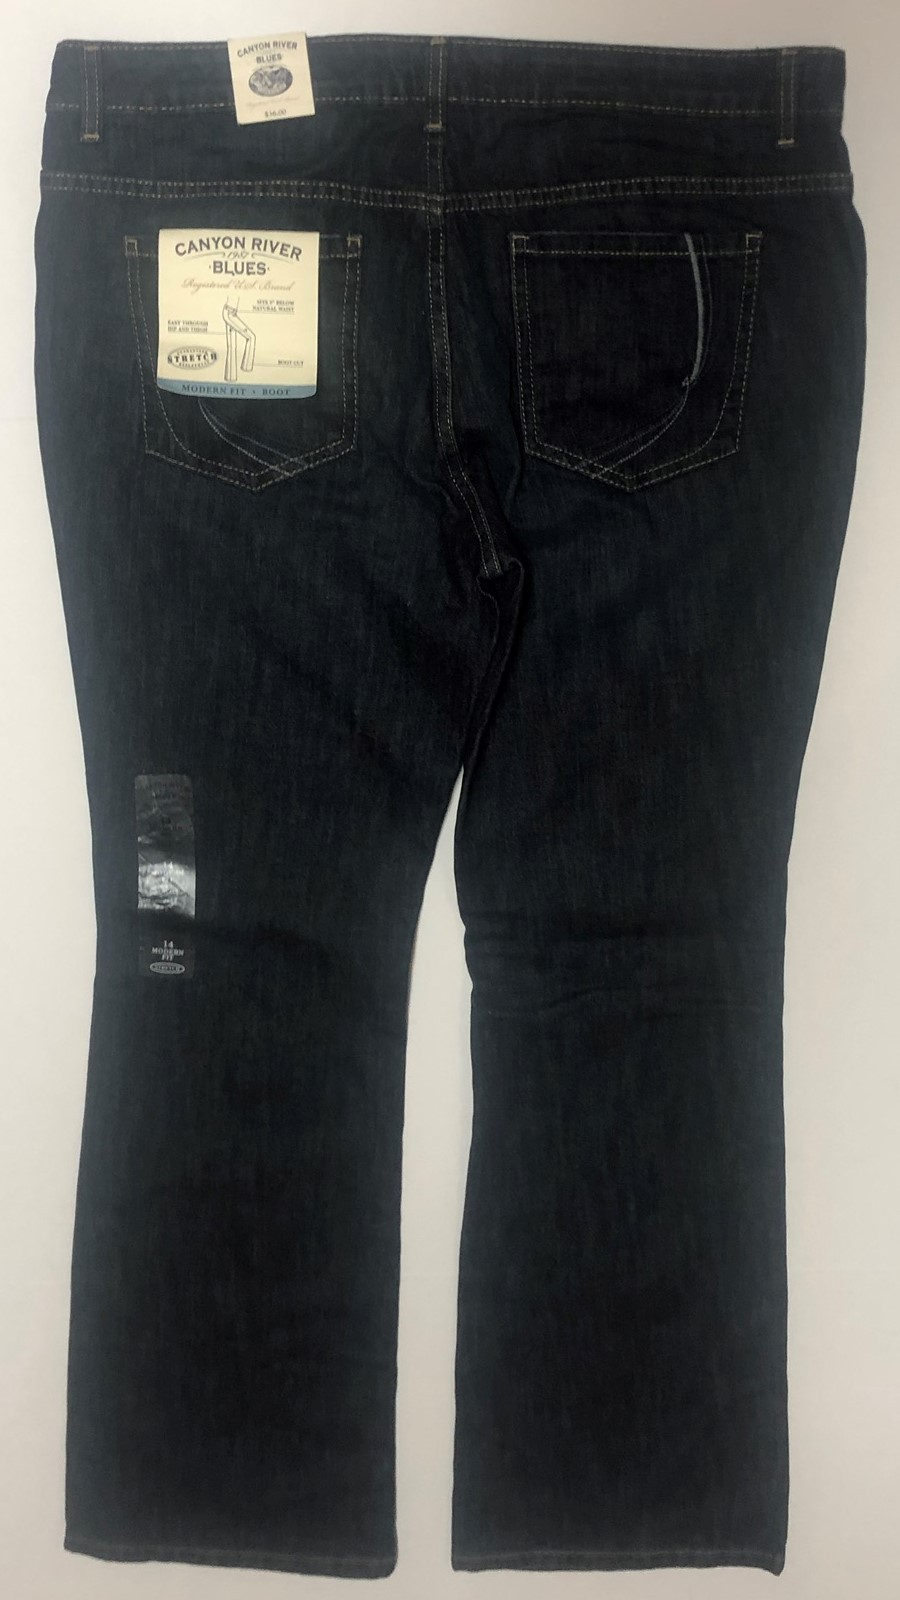 Canyon River Blues Jeans Boot Cut Low Waist Sz 14 Average Stretch image 8